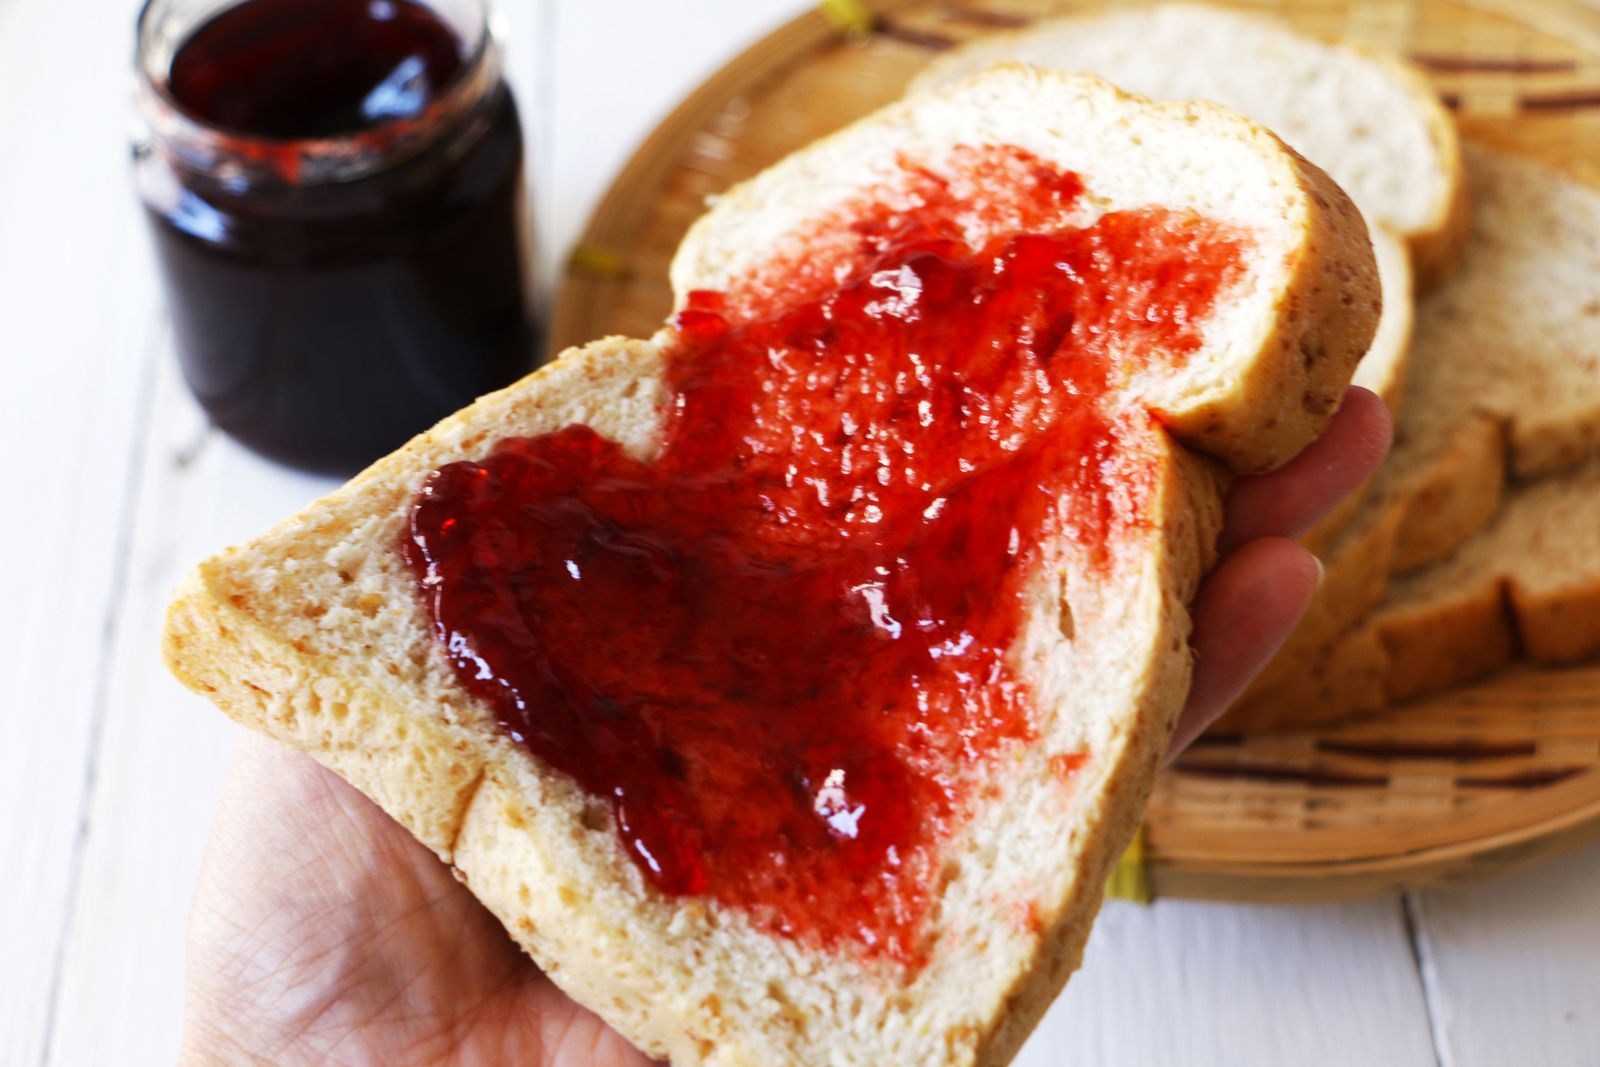 Cropped hand holding bread with jam